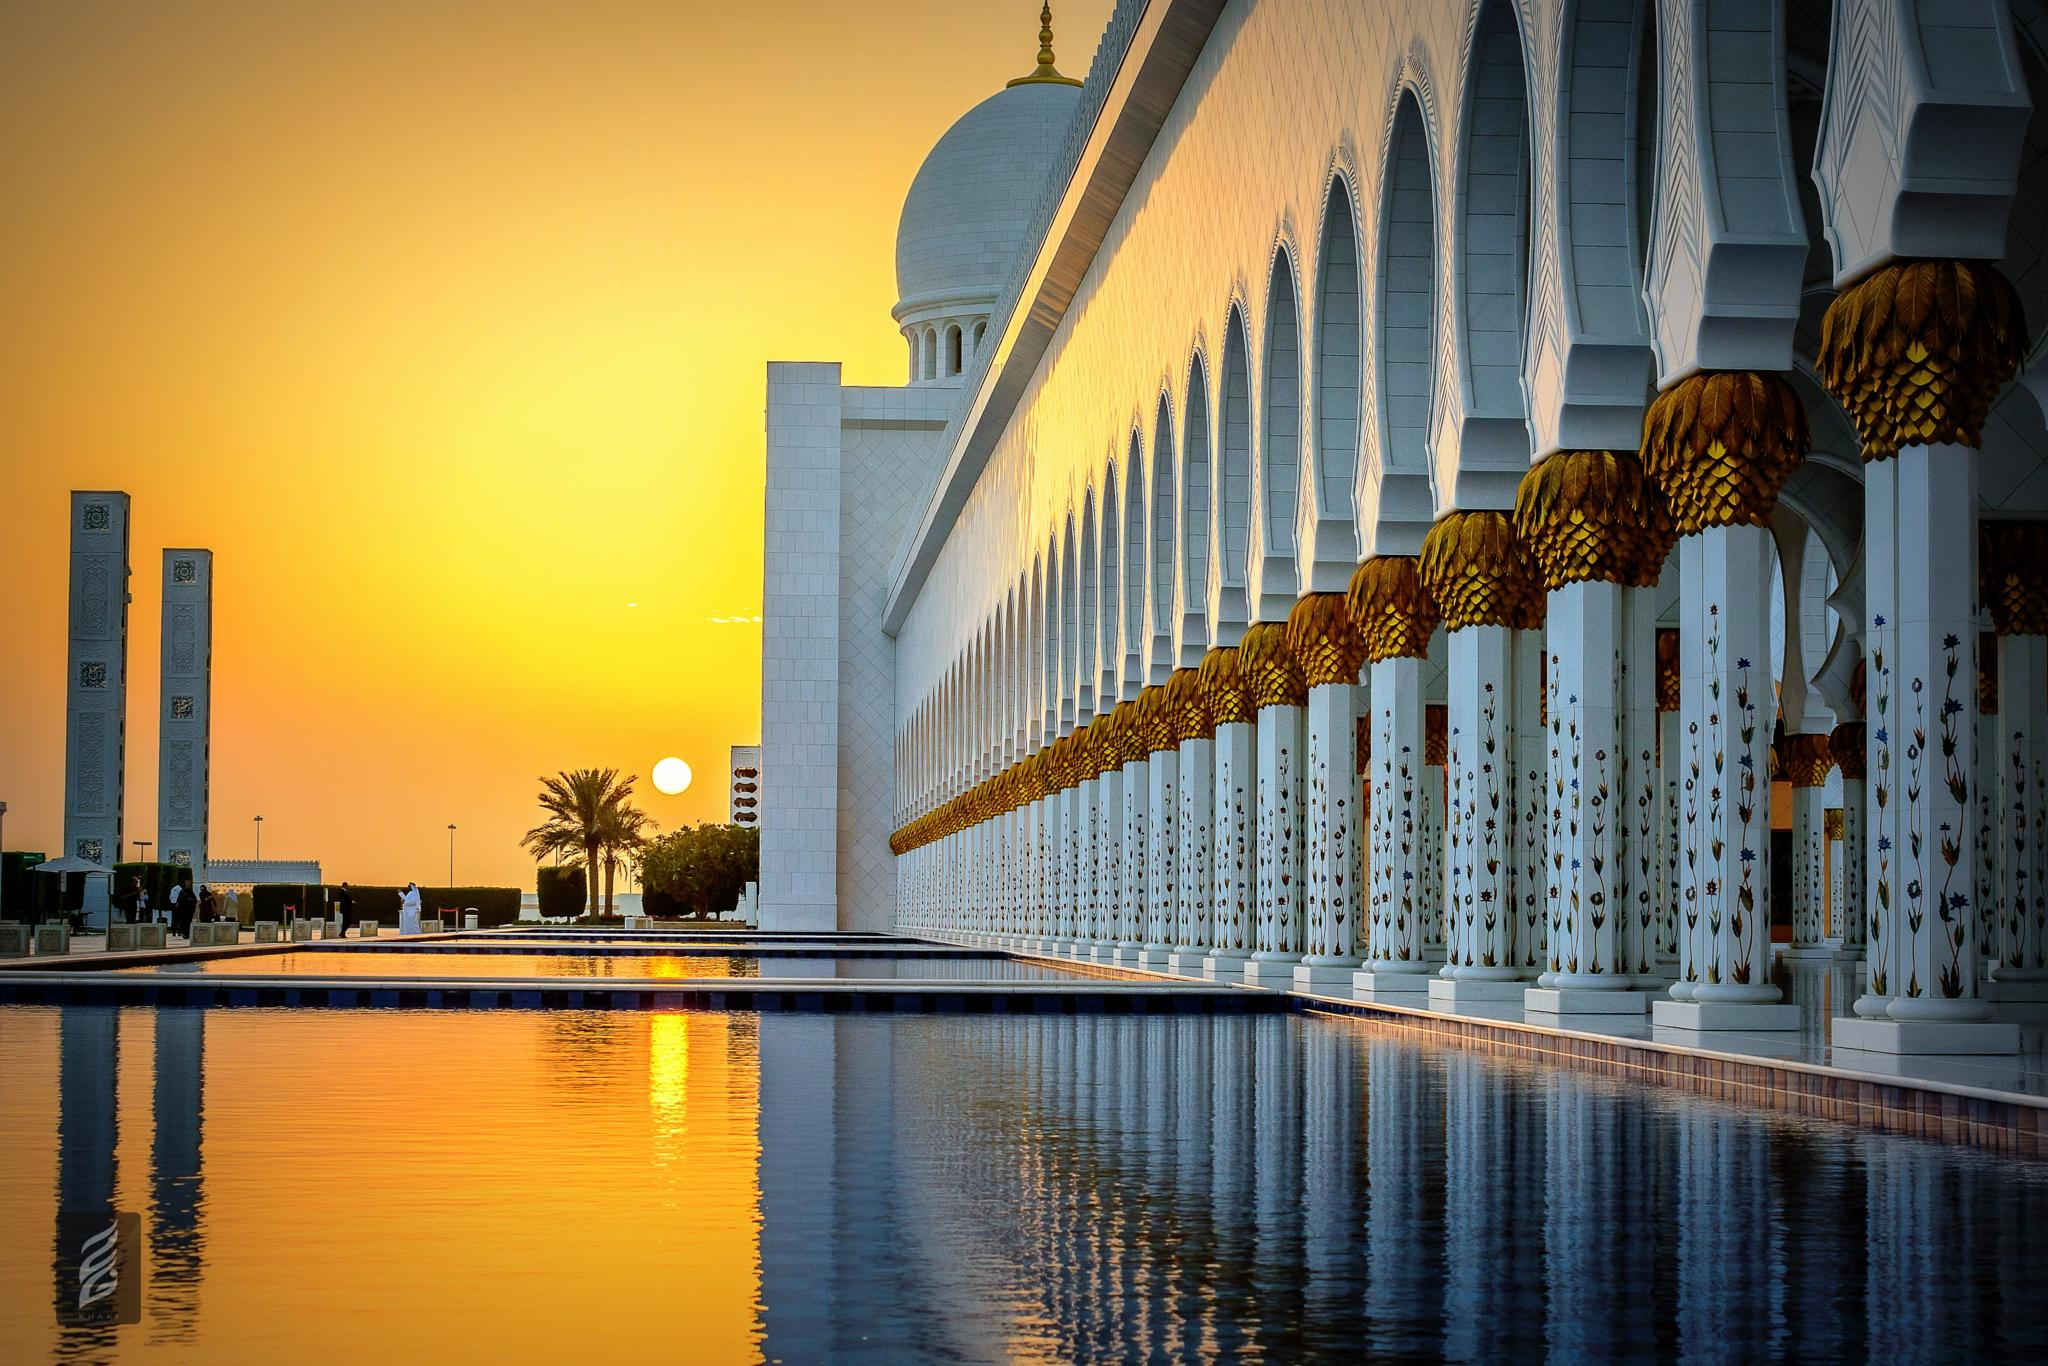 Sunset at mosque by KHAKI